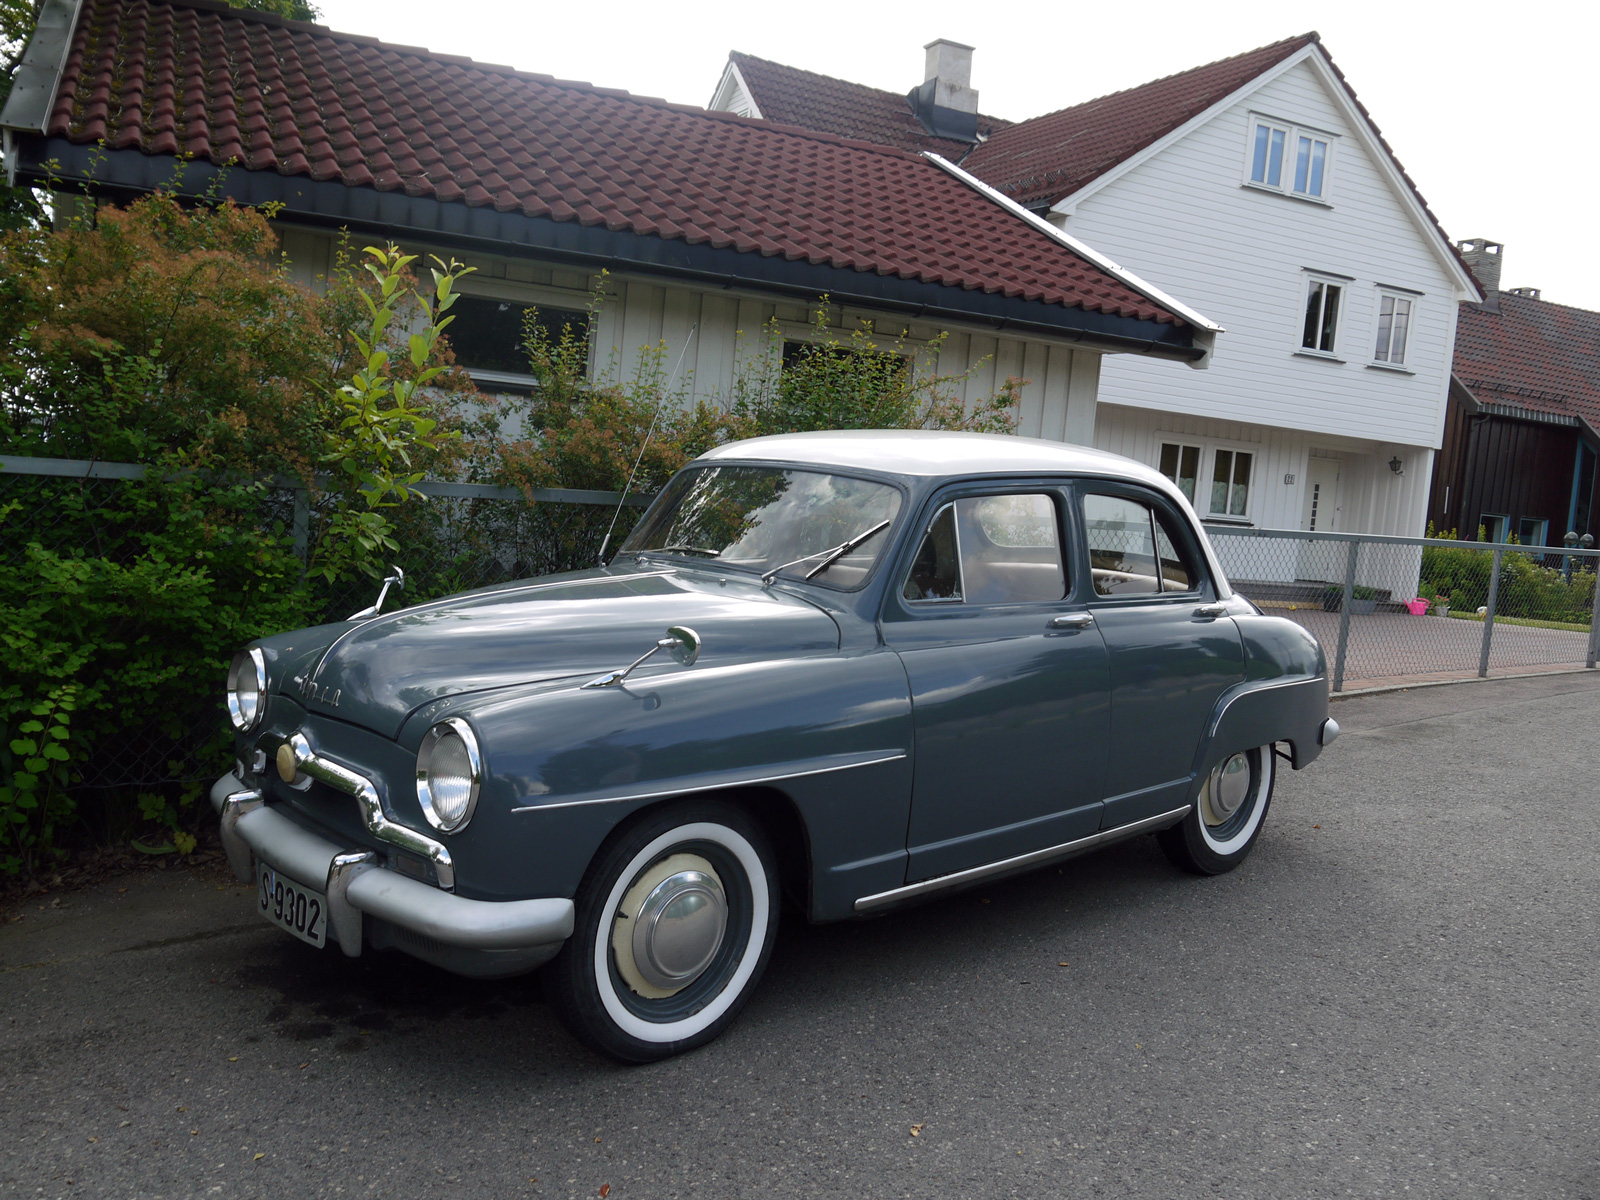 1953 Simca 9 Aronde classic car Oslo french